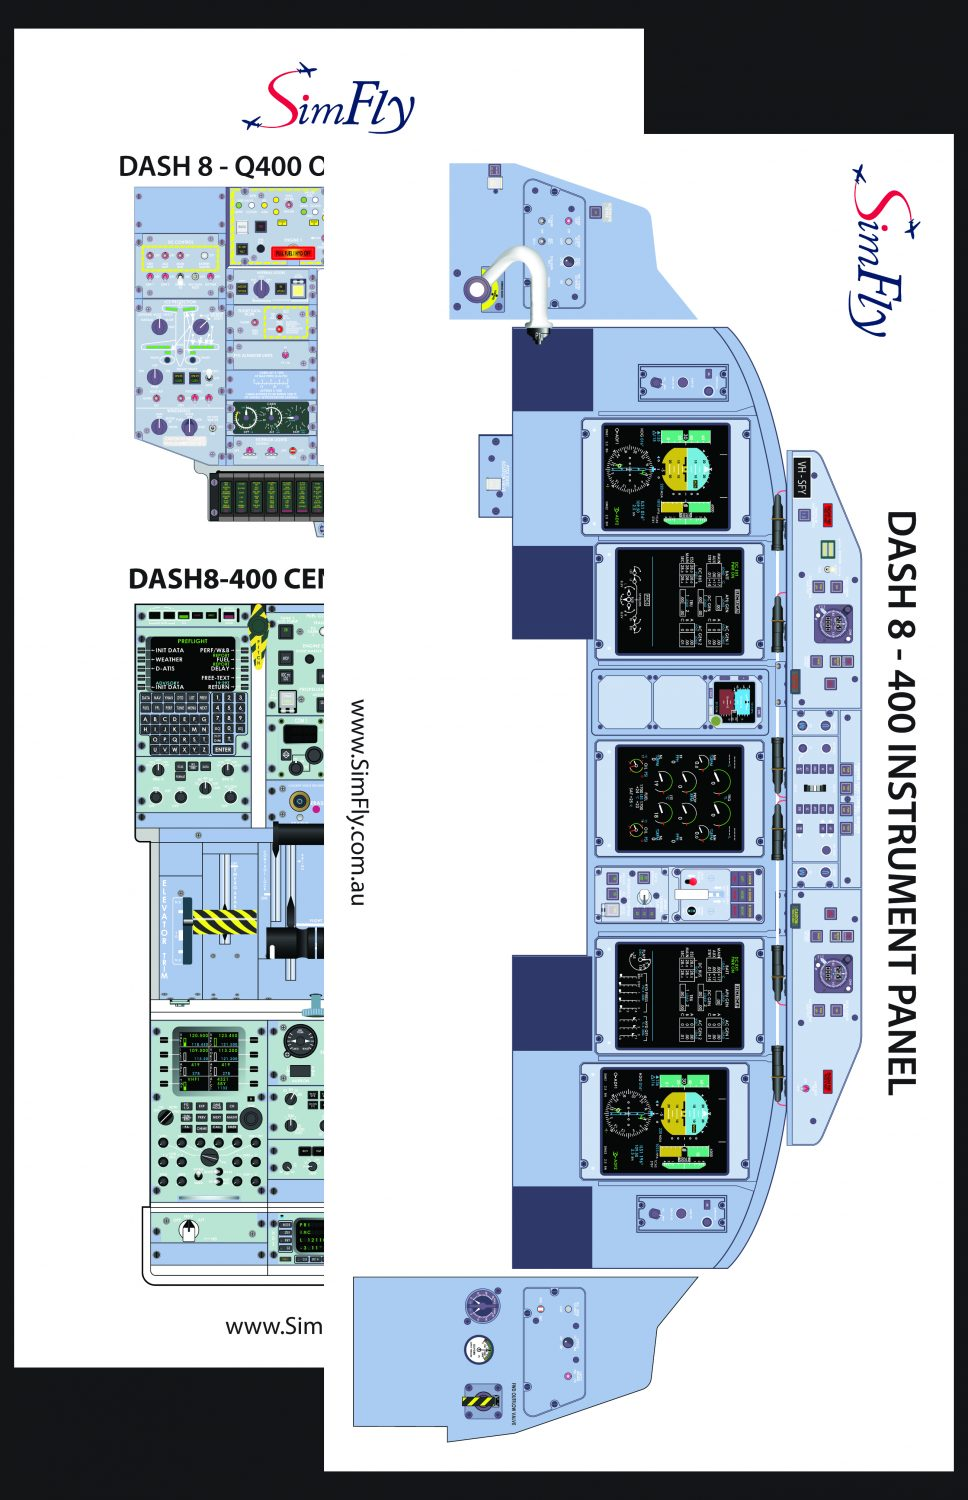 DASH 8-400 Overhead Panel cockpit poster